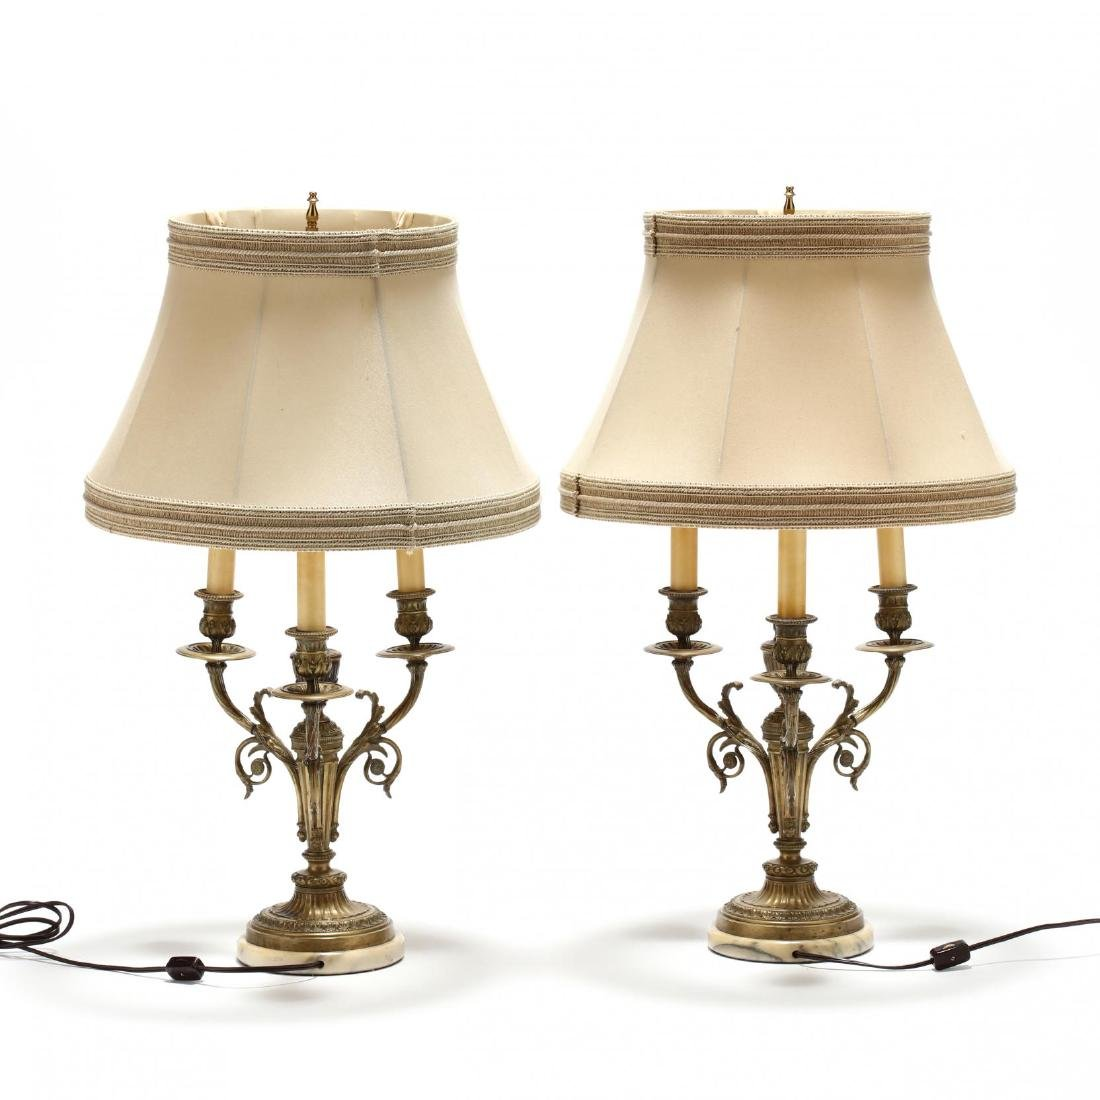 Pair of French Classical Style Table Lamps - 3